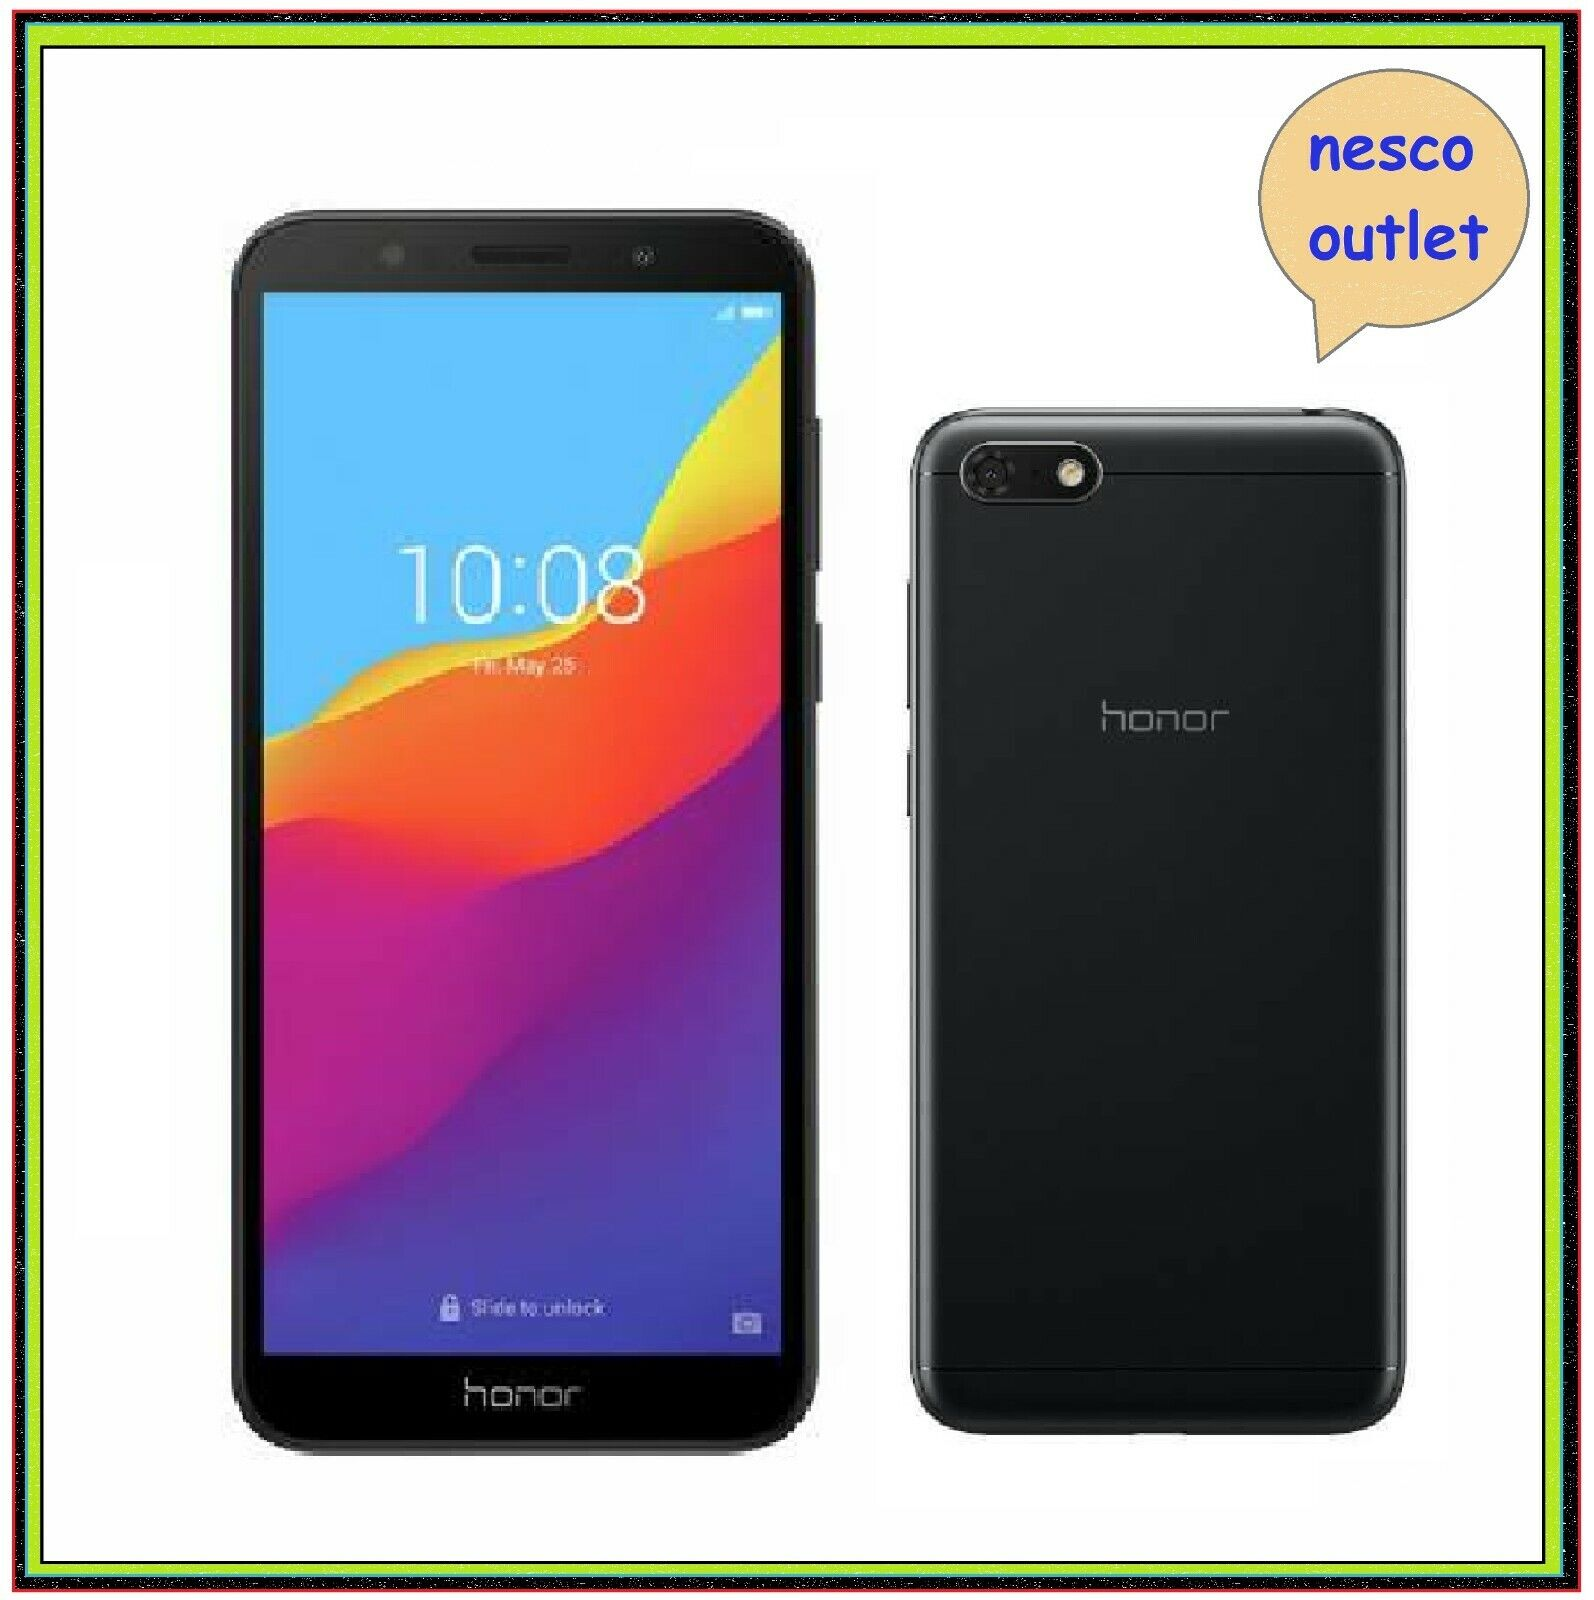 Android Phone - Huawei Honor 7S 16GB Android Dual Sim Unlocked Smartphone Black Mobile Phone